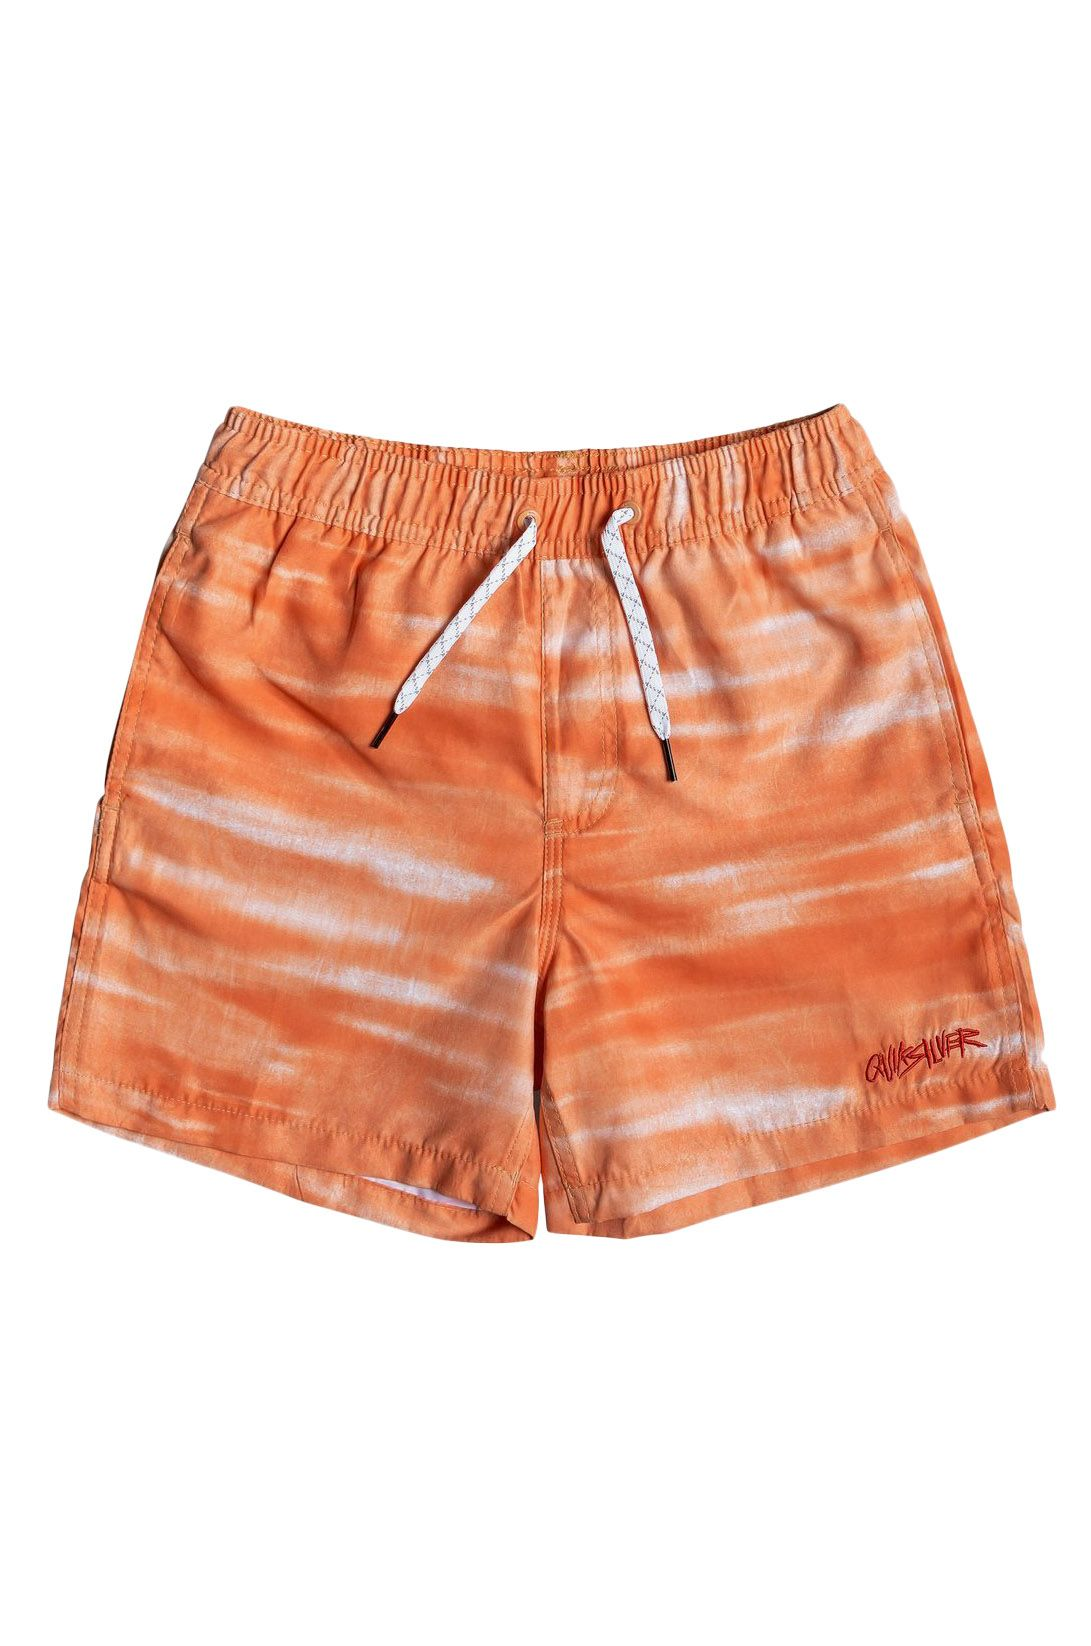 Volleys Quiksilver ACIDVLYTH14 B JAMV Tigerorange